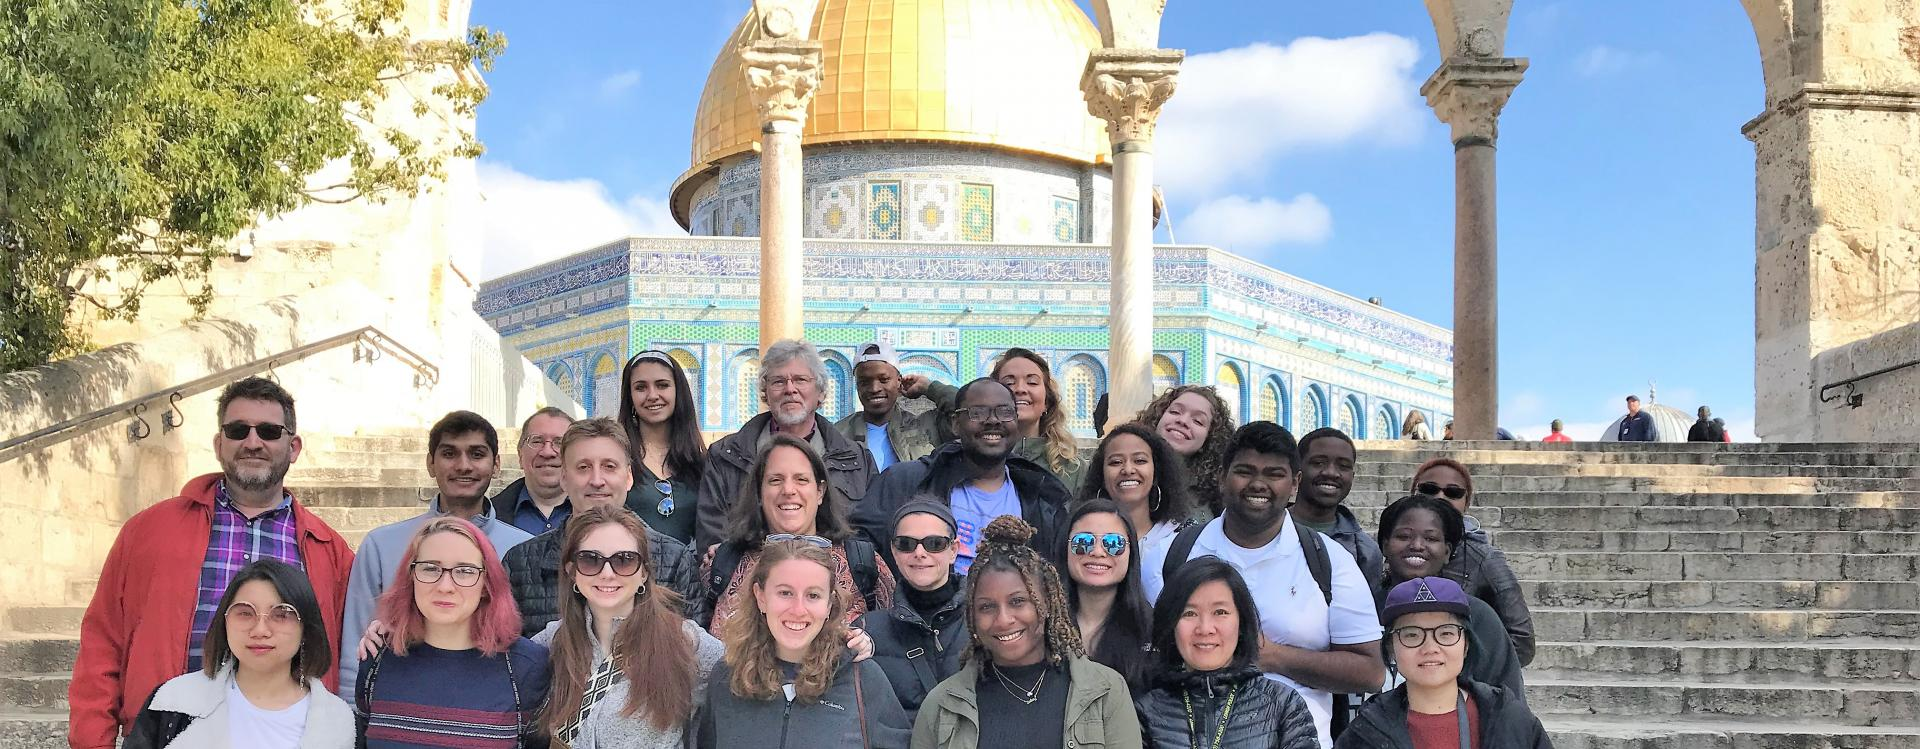 2019 Trip to Israel-Palestine Travelers at Dome of The Rock